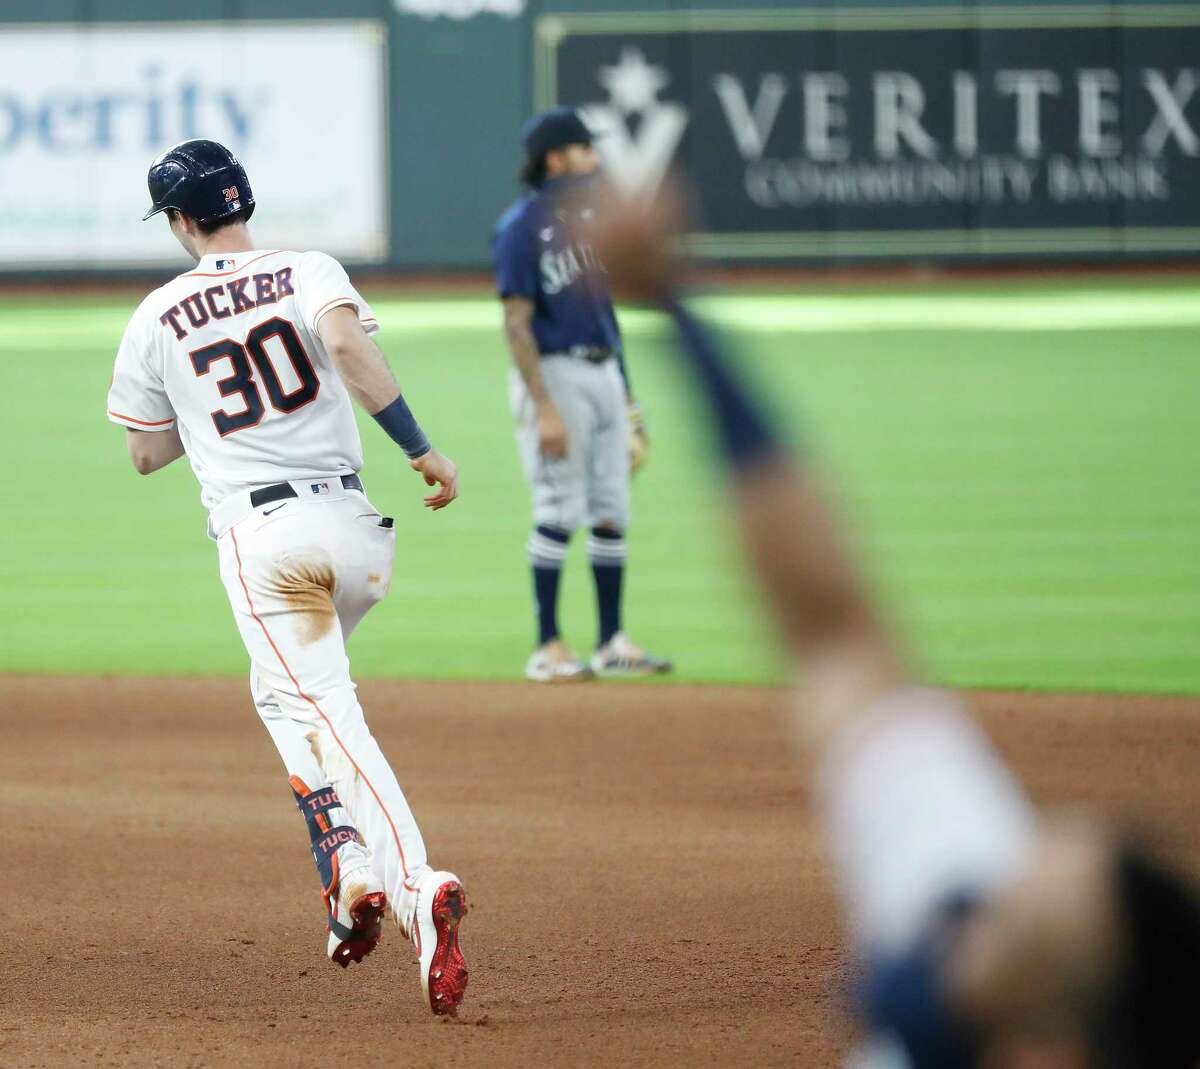 Houston Astros Kyle Tucker (30) runs the bases after hitting a walkoff home run during the ninth inning of an MLB baseball game at Minute Maid Park, Sunday, August 16, 2020, in Houston. Astros win 3-2 against the Seattle Mariners.